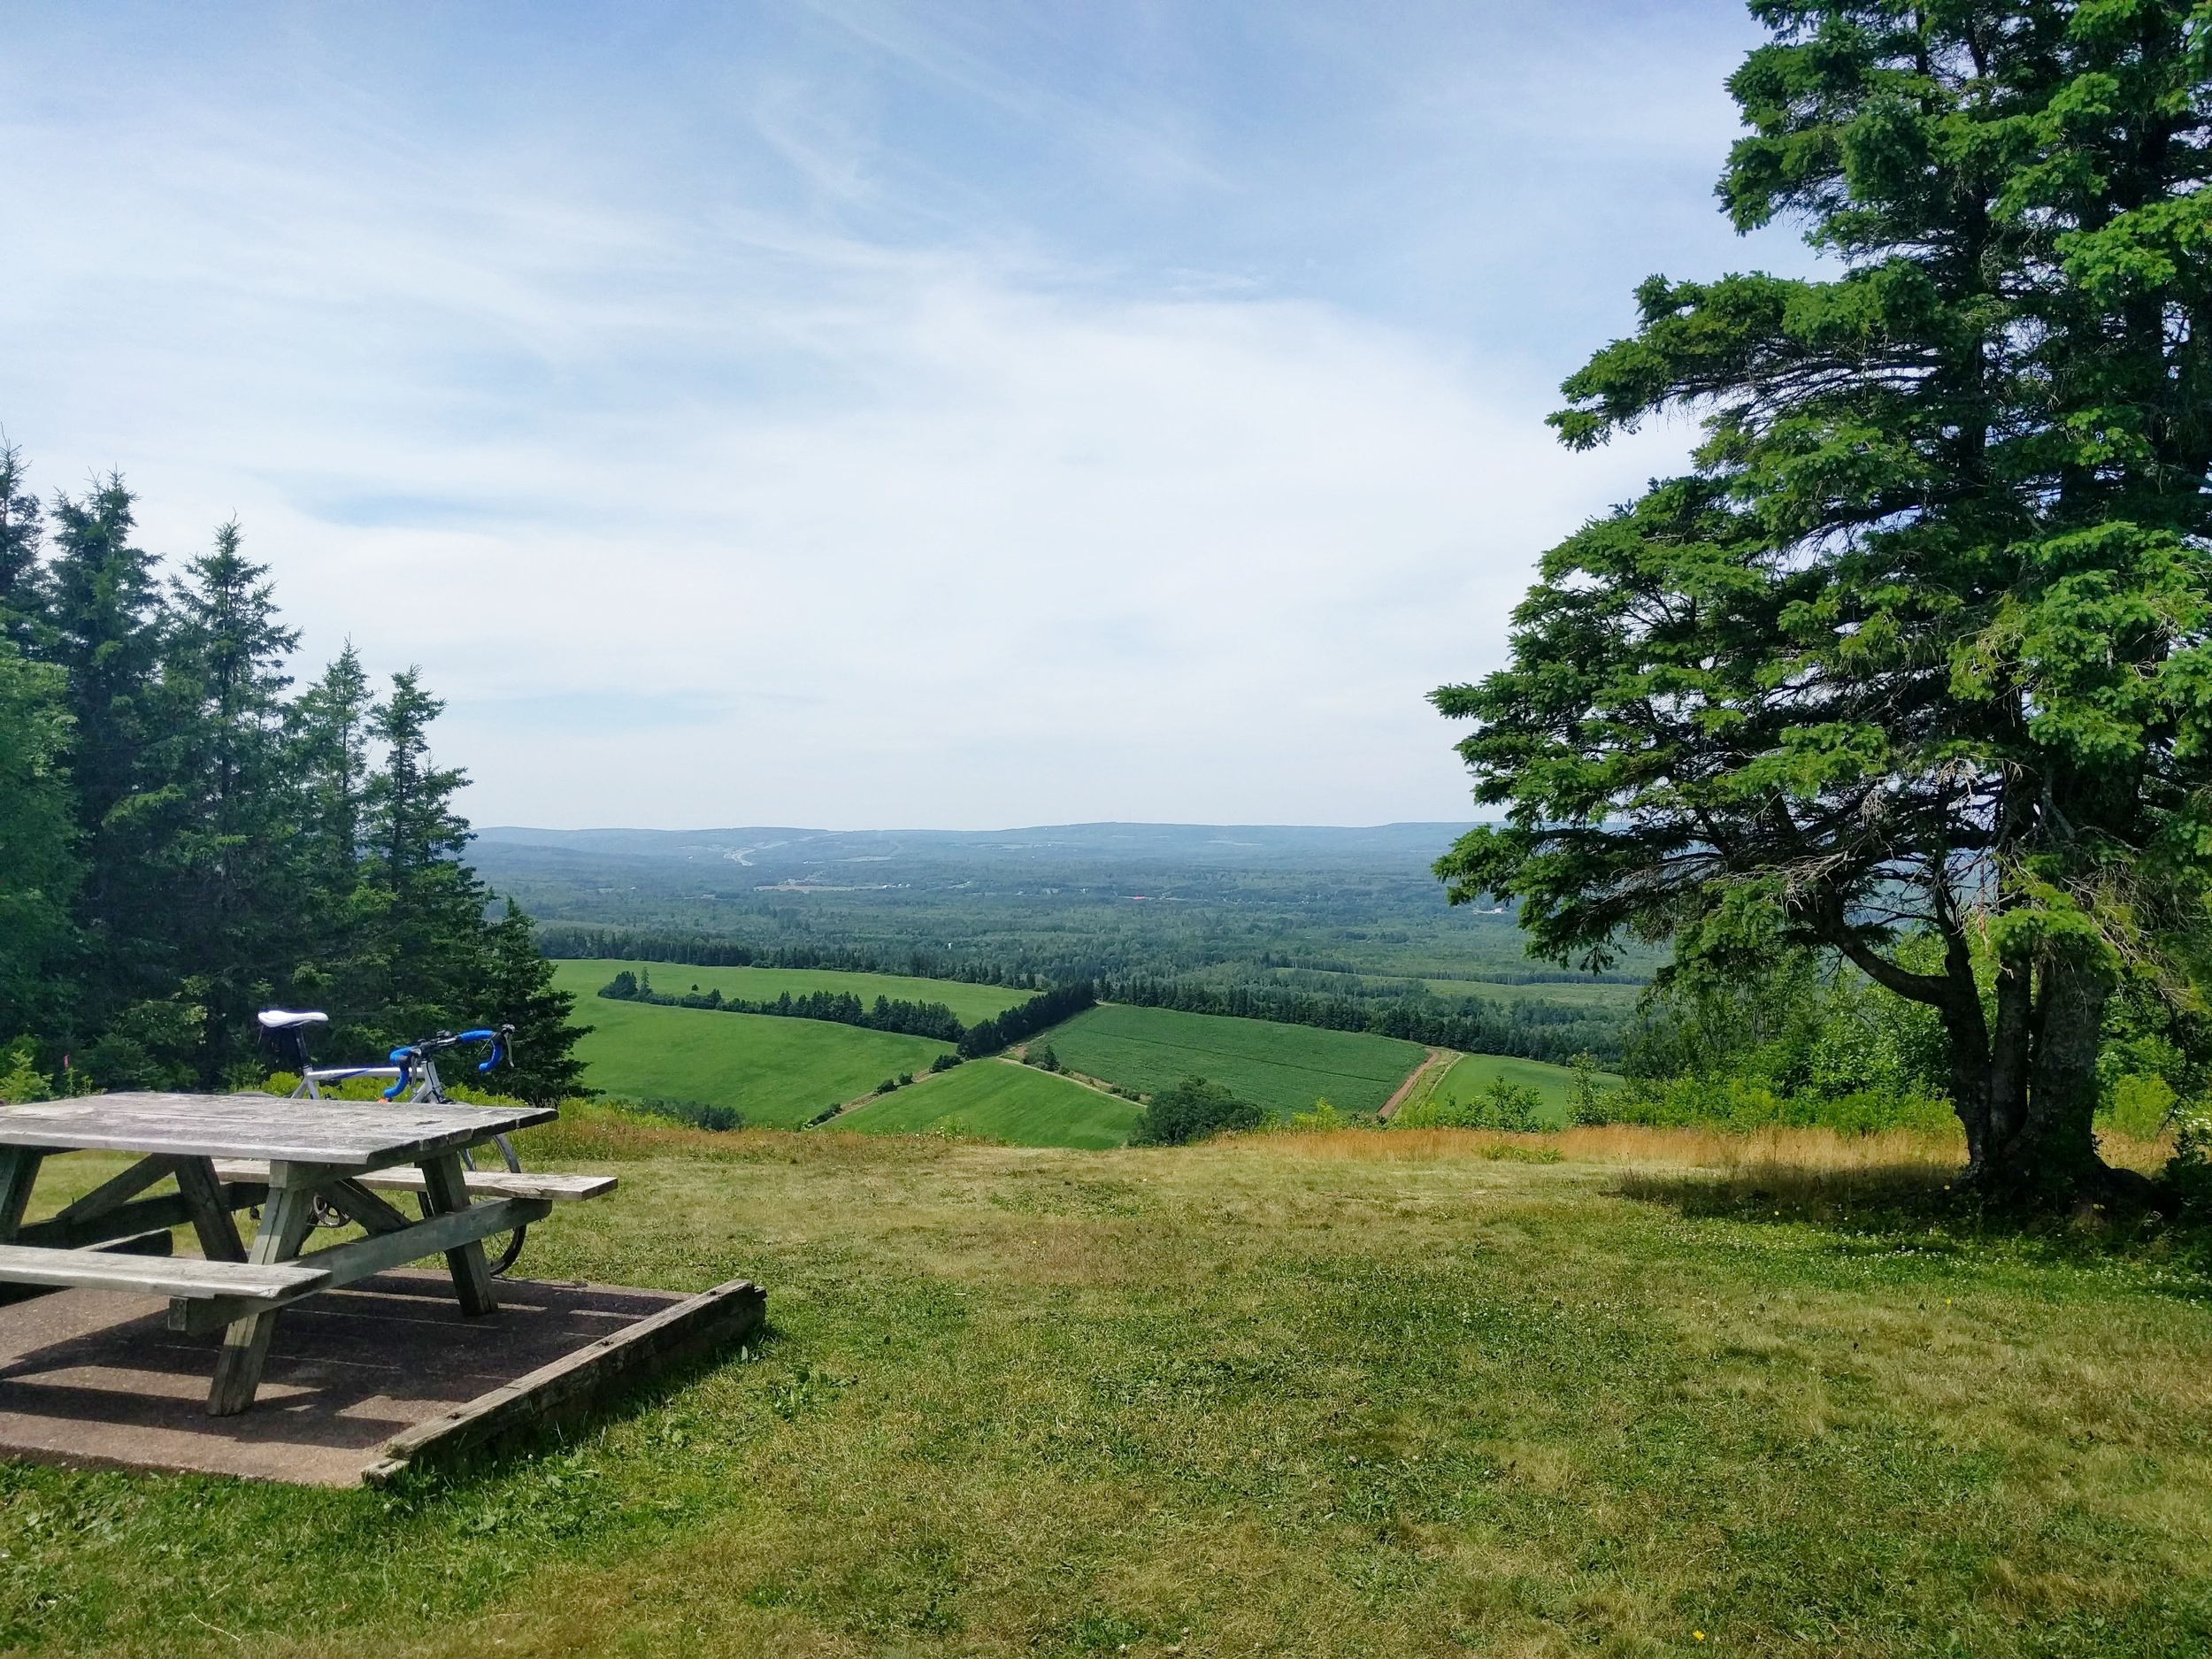 Today's Picnic is at Green Hill Provincial Park